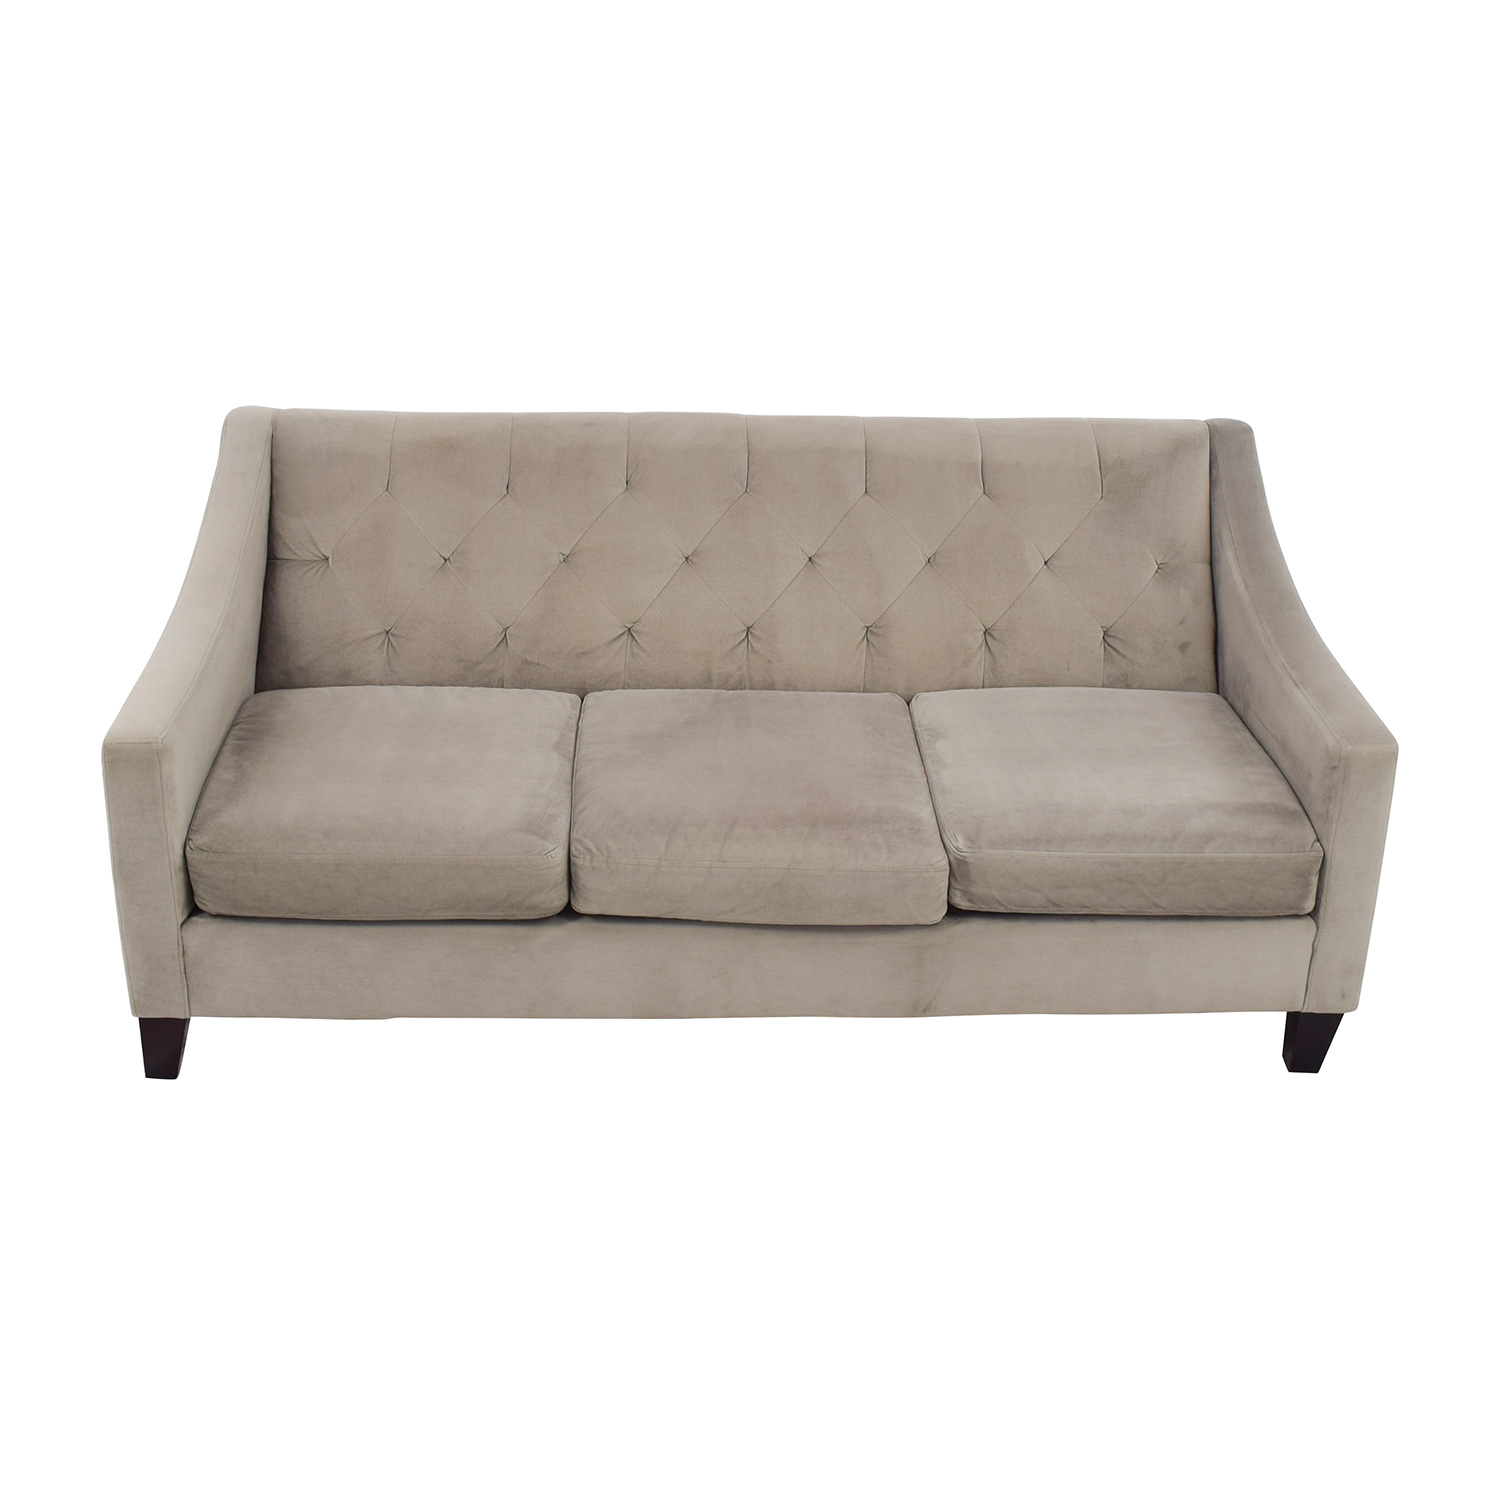 Macys Macys Tufted Back Grey Couch on sale